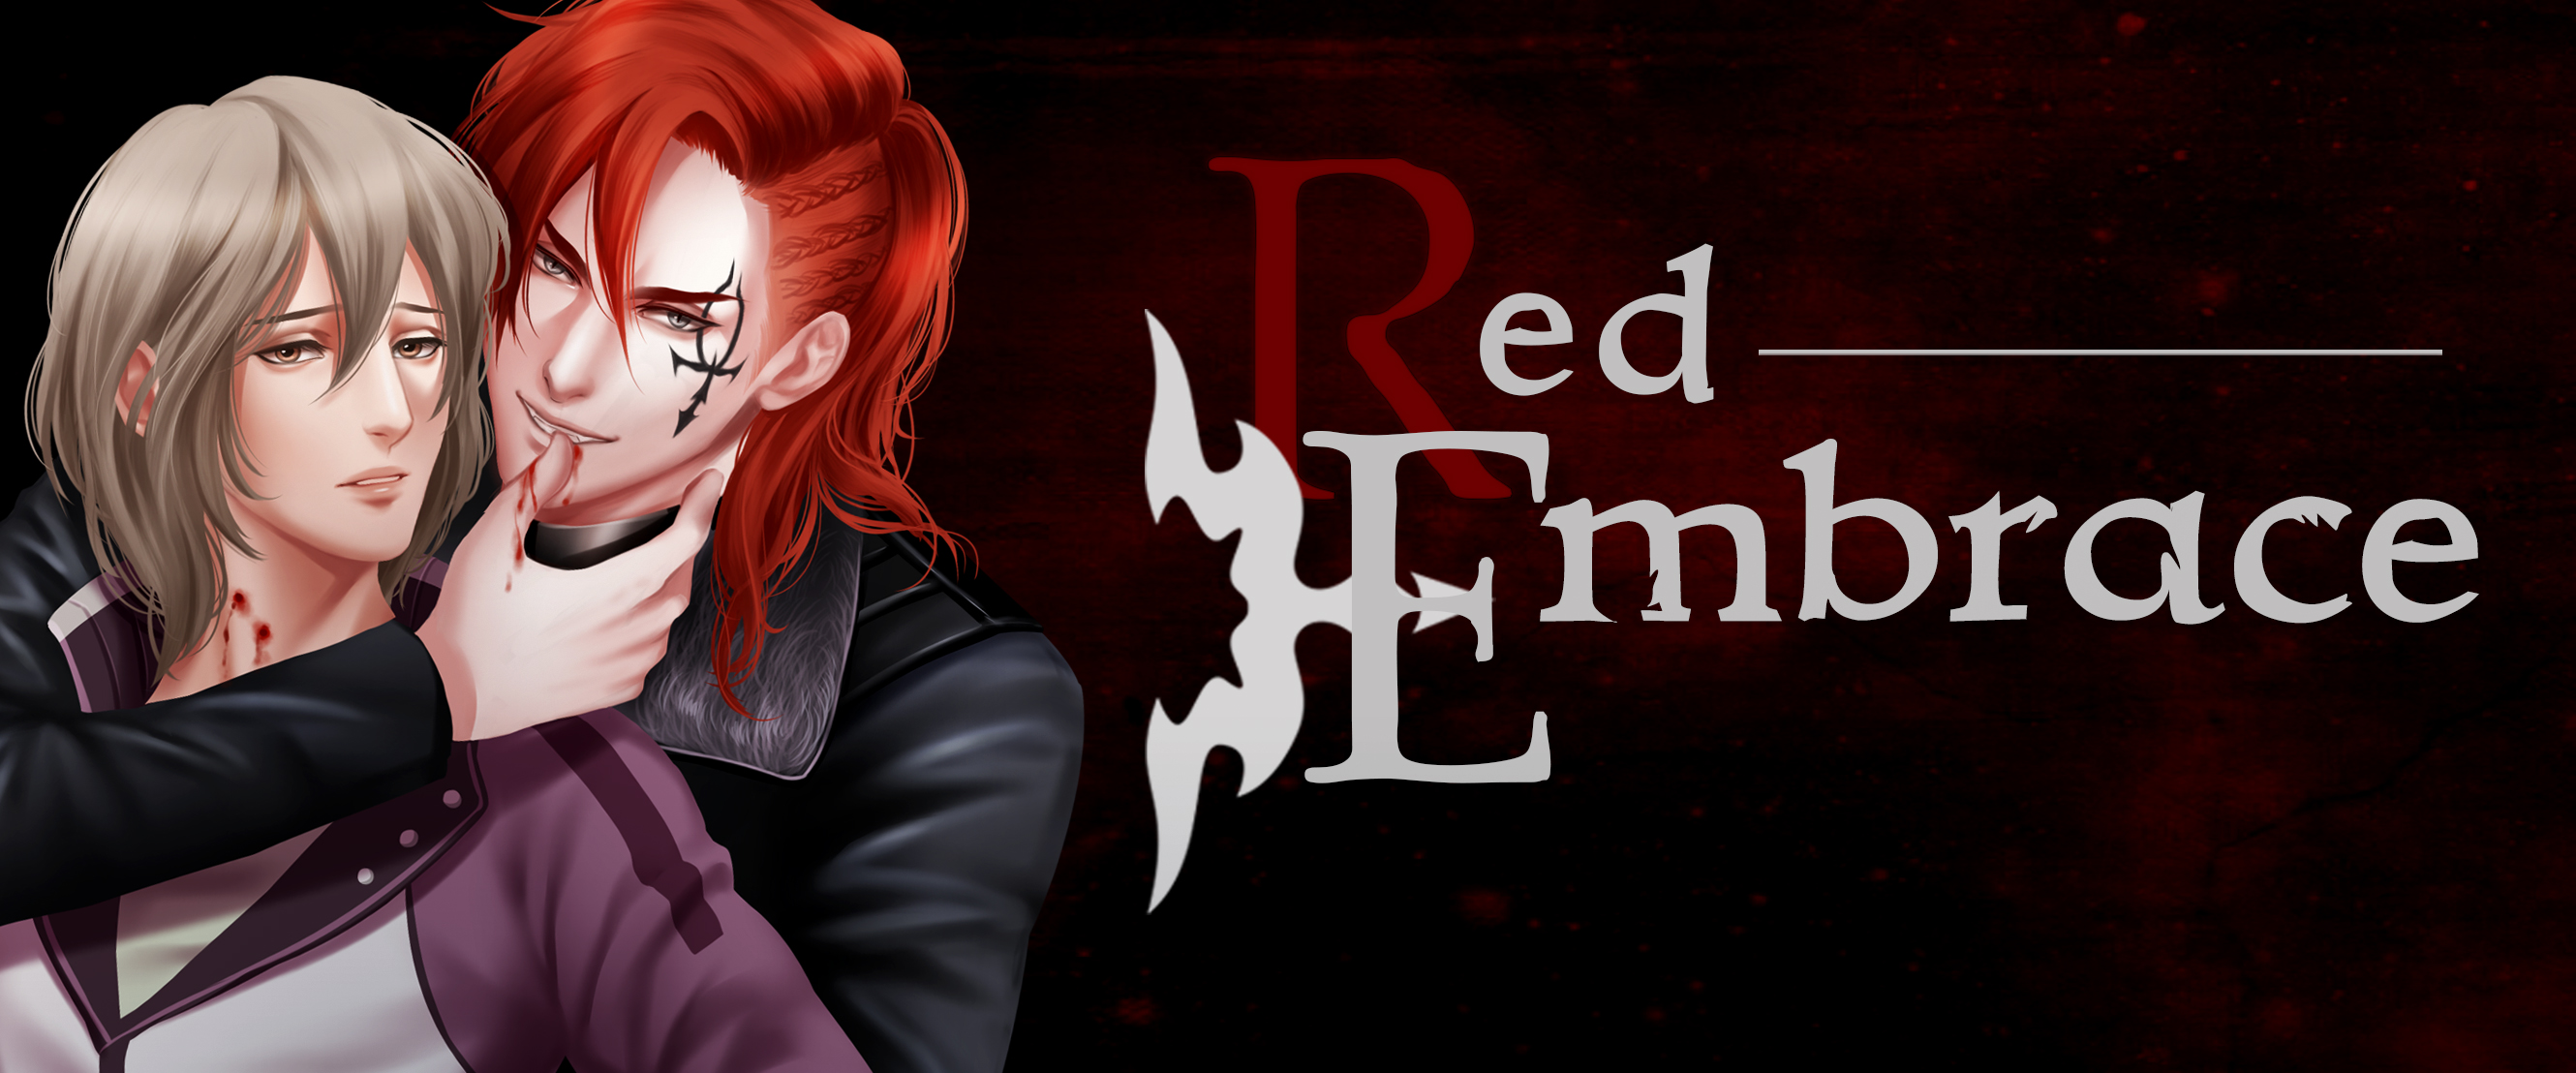 Red Embrace (BL Visual Novel)